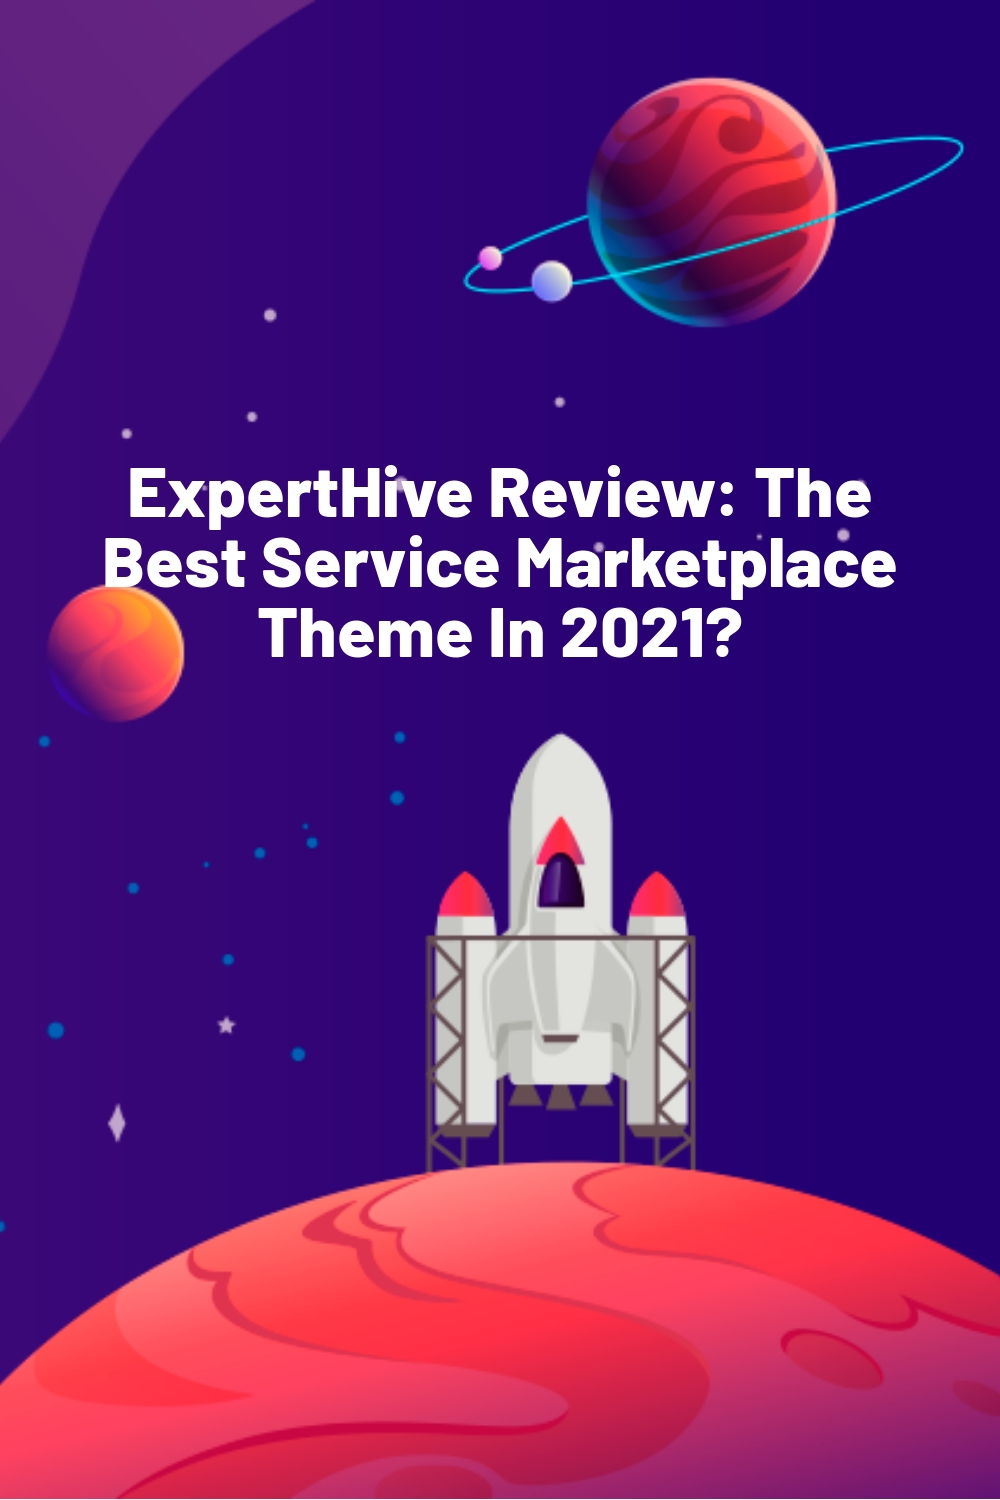 ExpertHive Review: The Best Service Marketplace Theme In 2021?